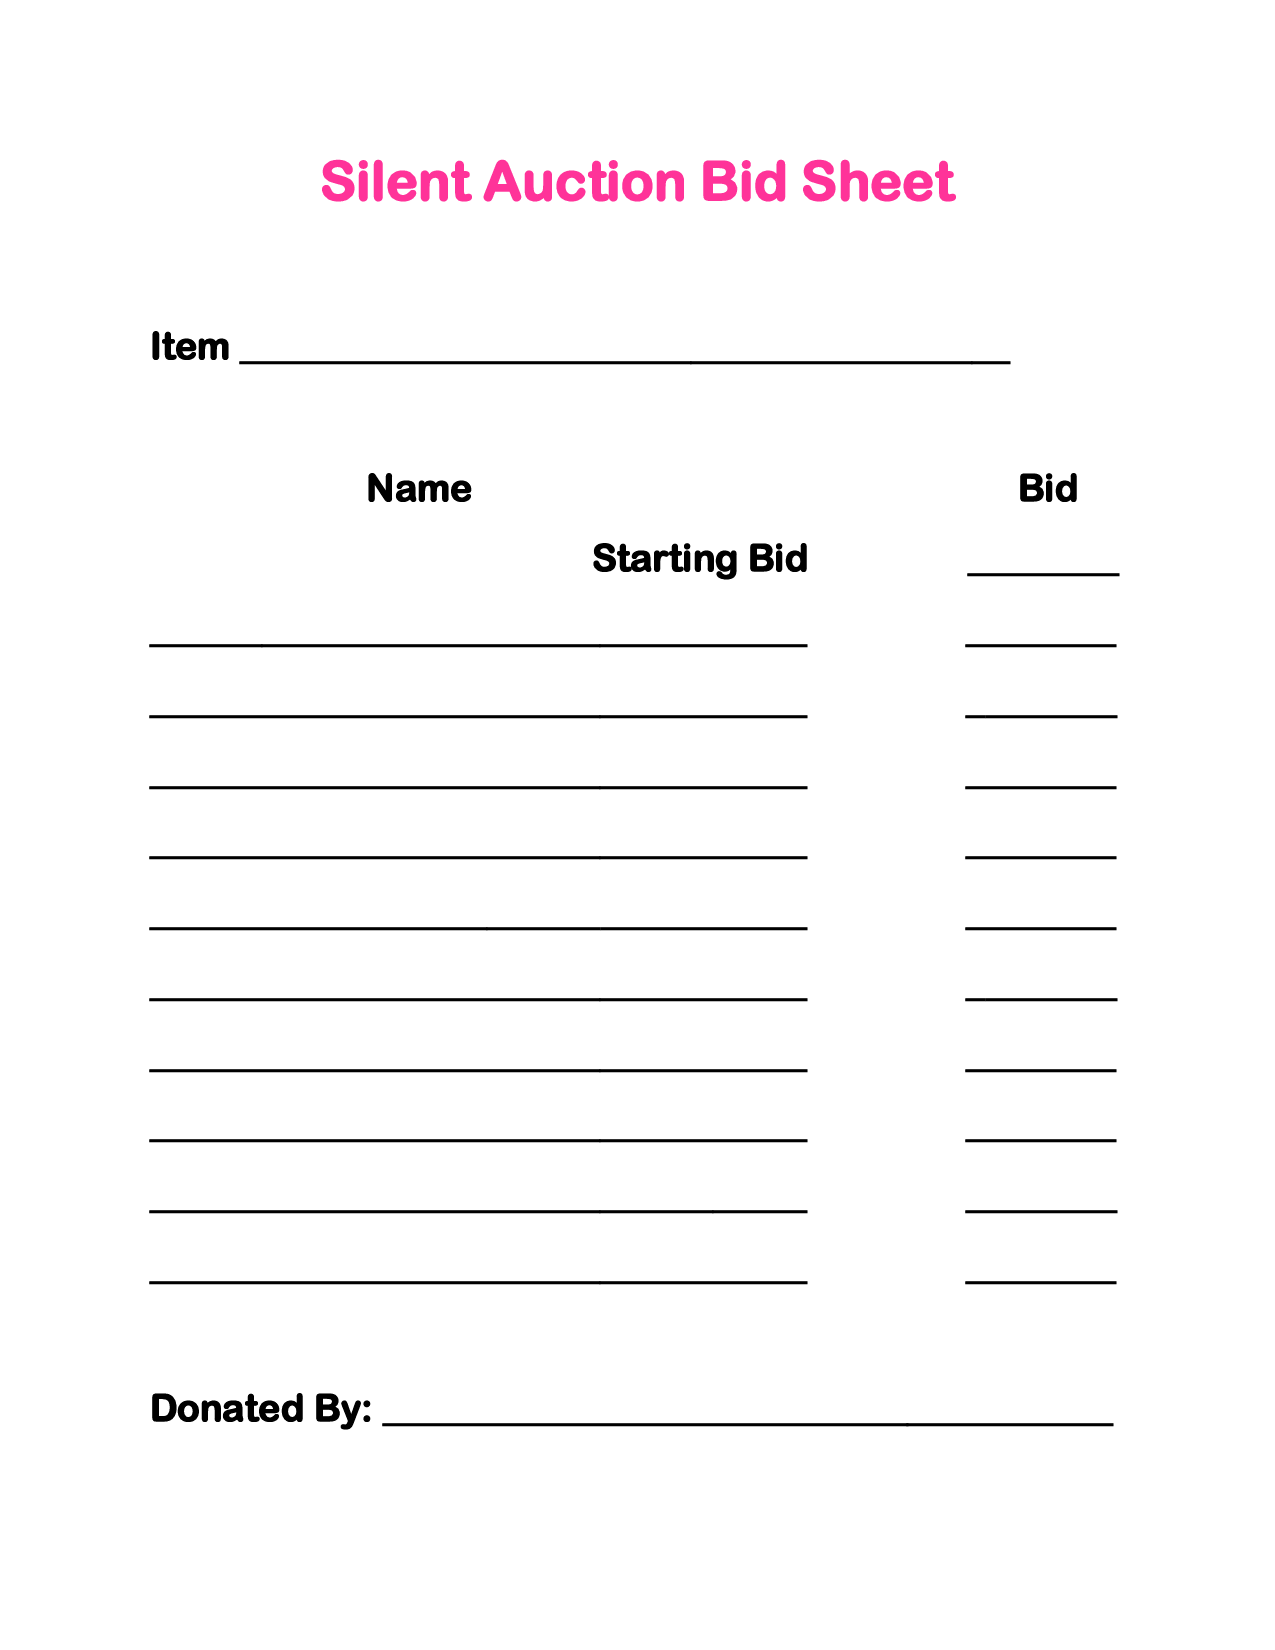 silent auction bid sheet template – Bid Sheet Template Free